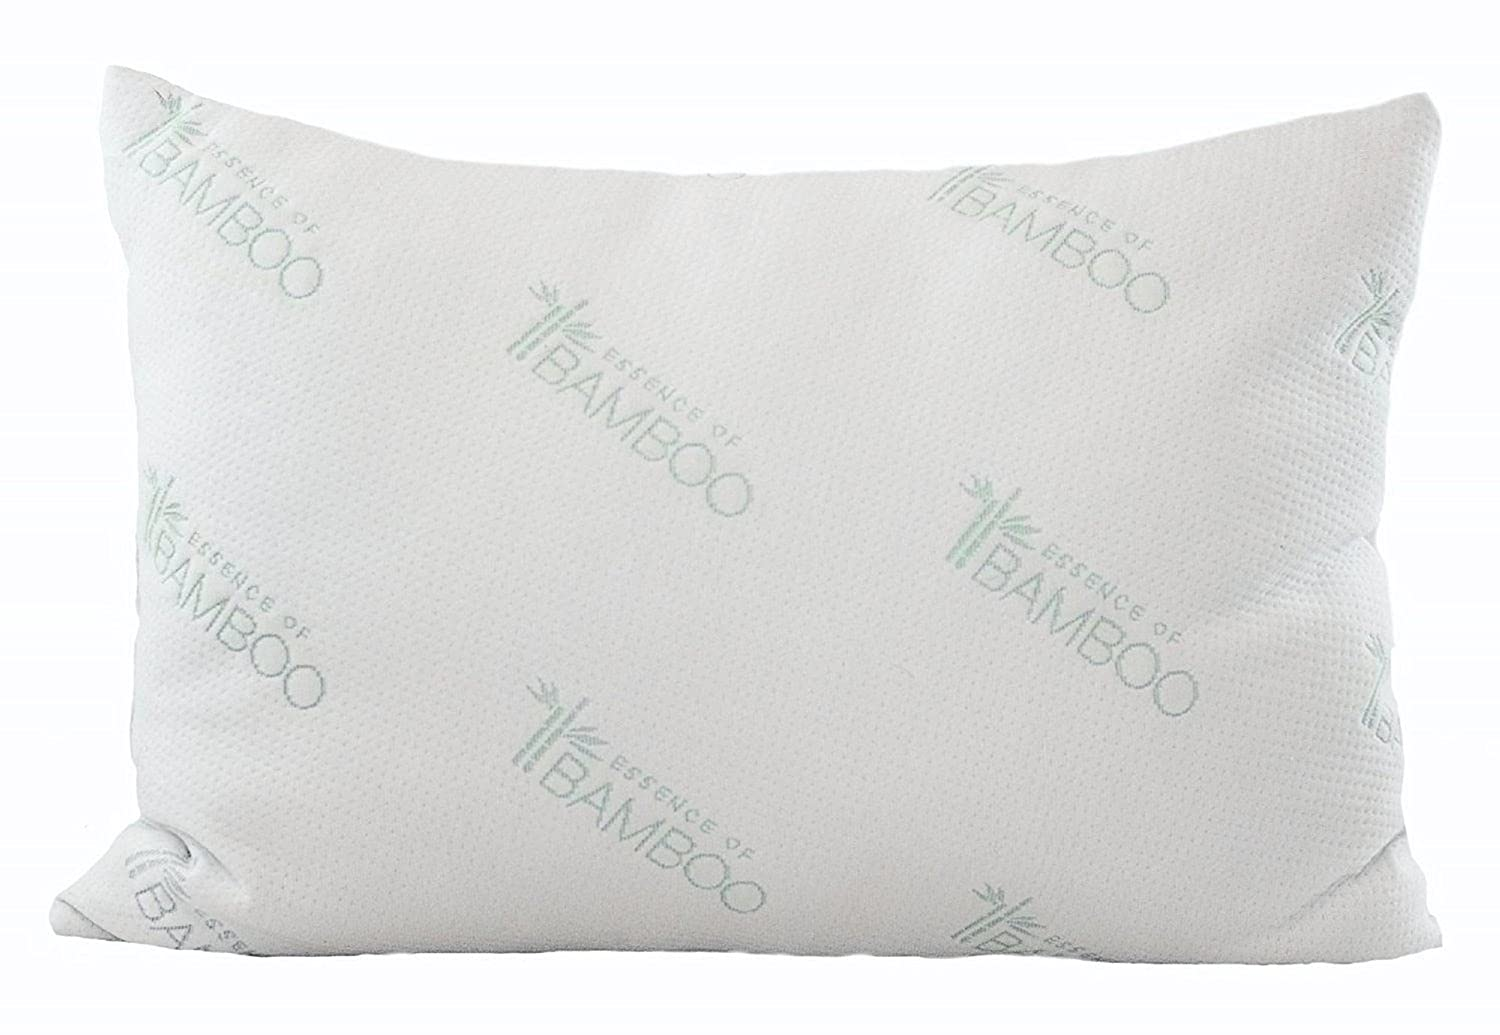 100 down pillows amazon amazon com quality rest classic fea